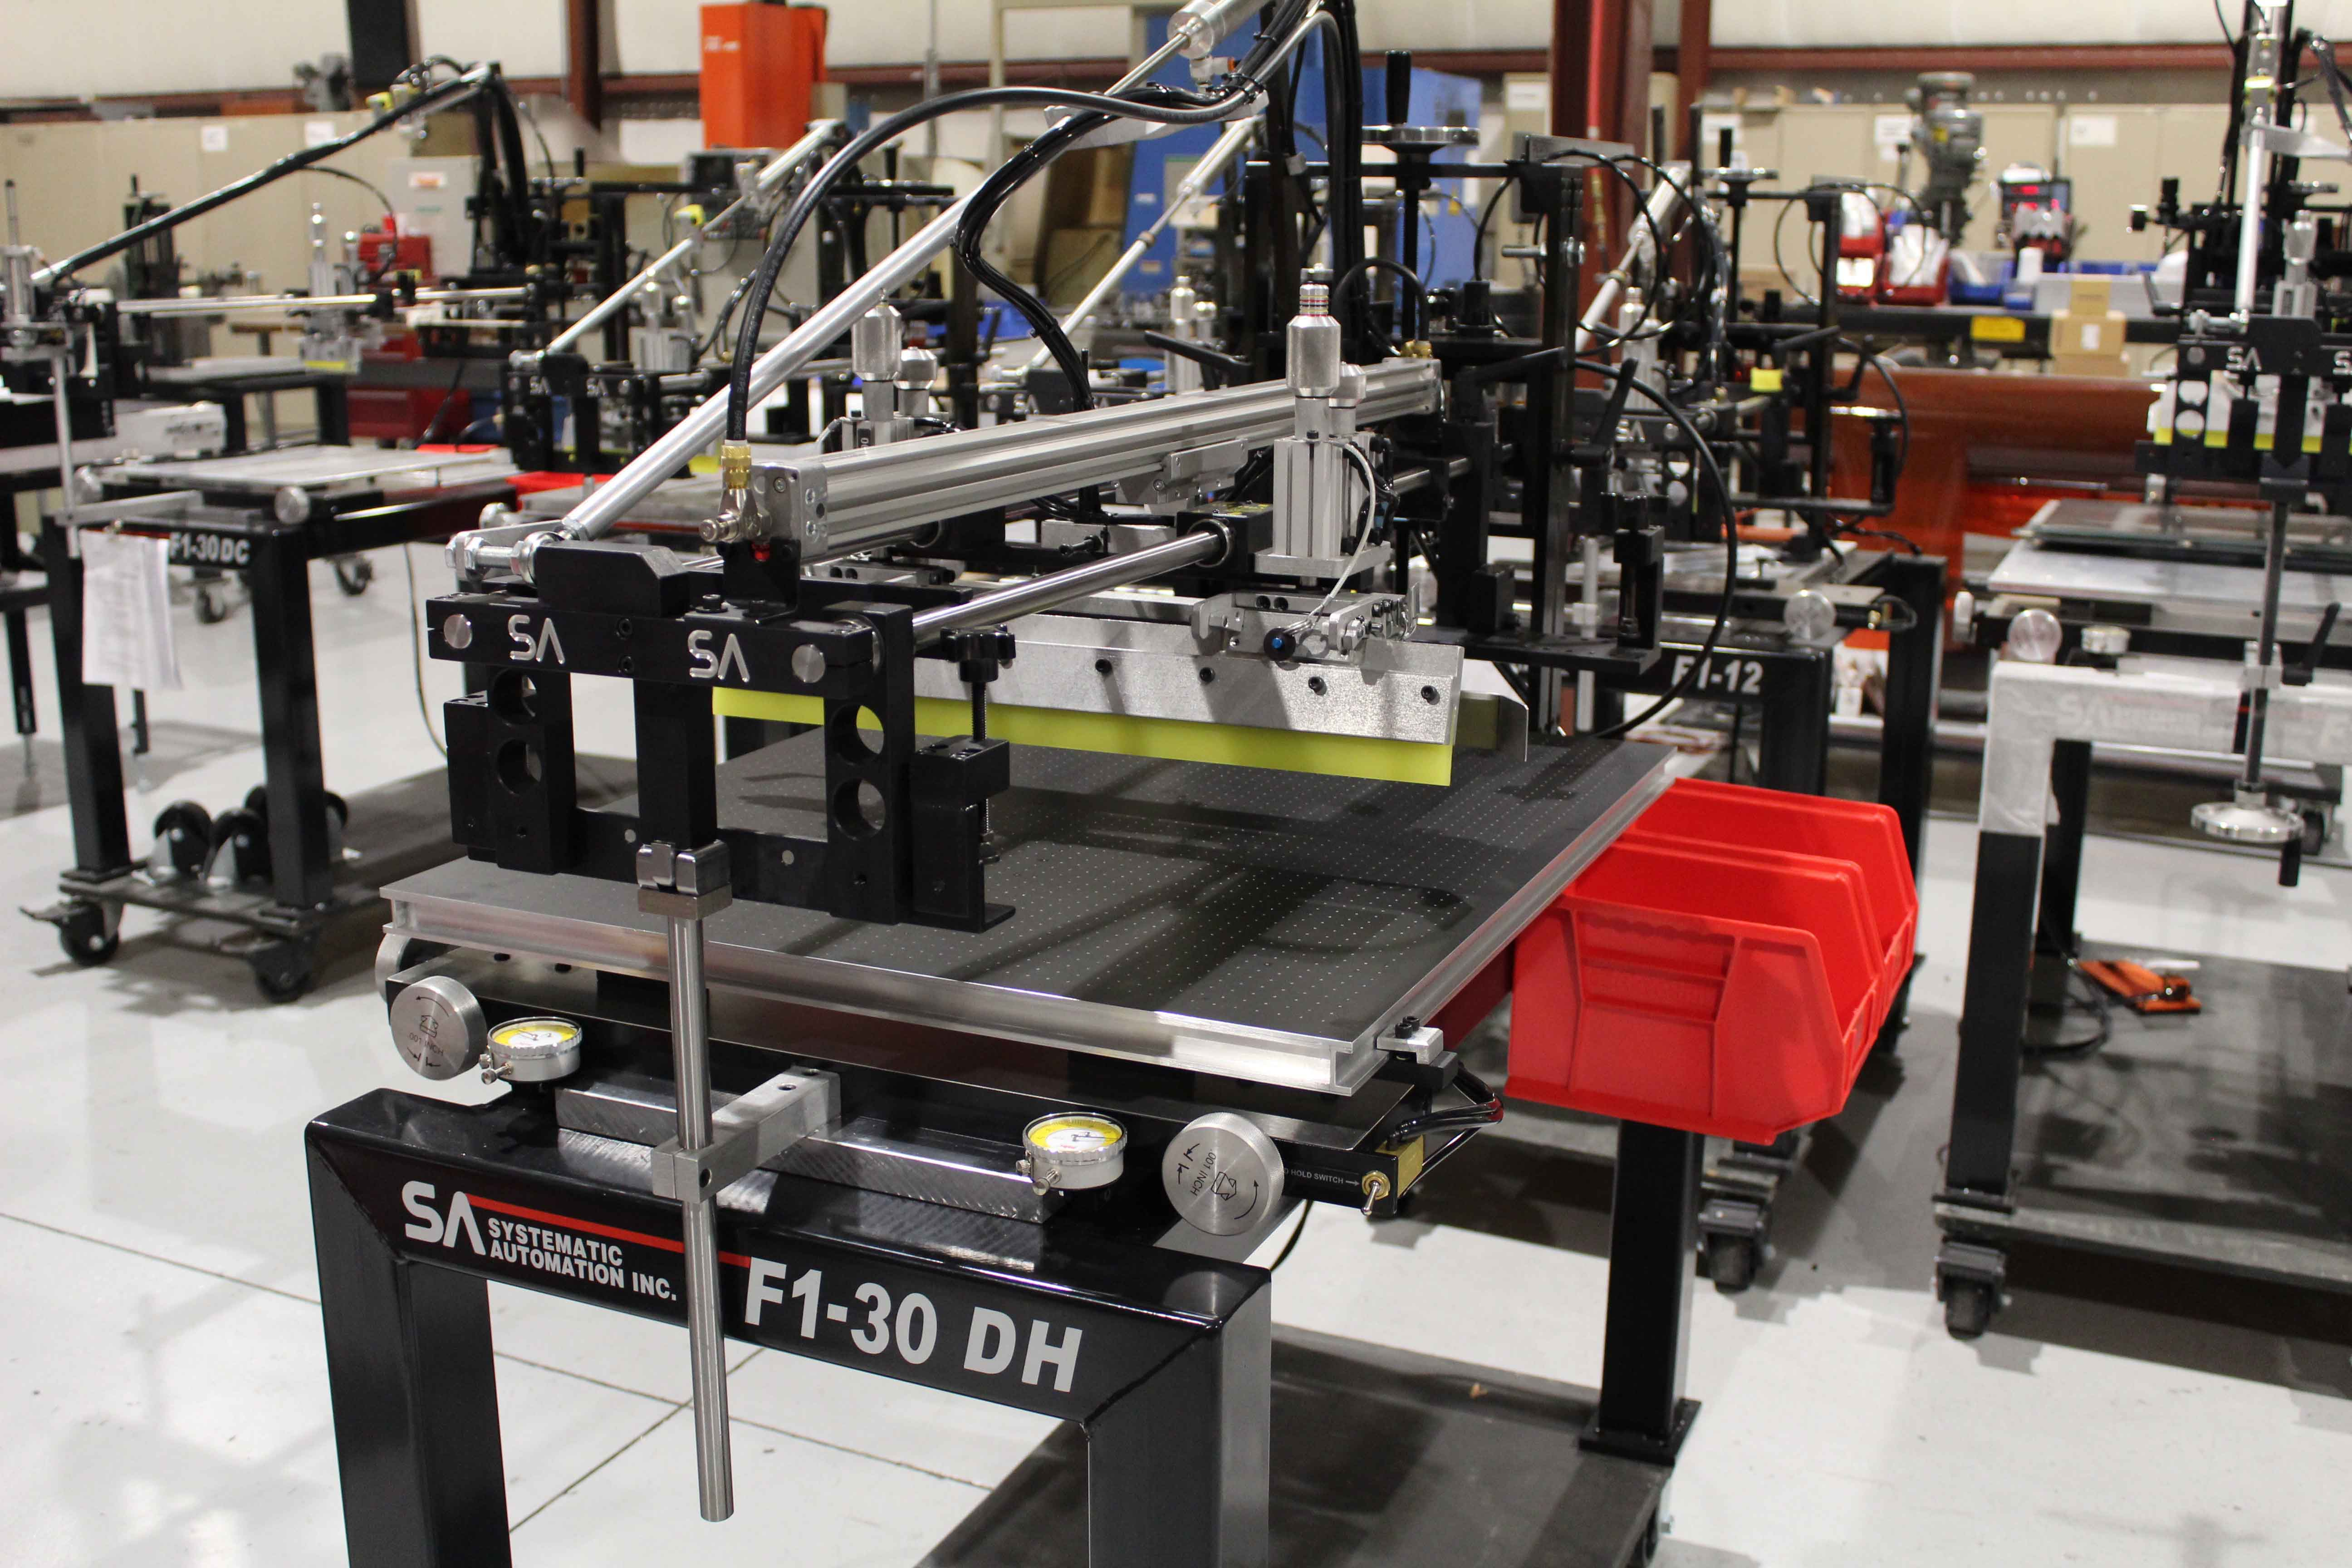 F1 Semi Automatic Screen Printer Systematic Automation Inc